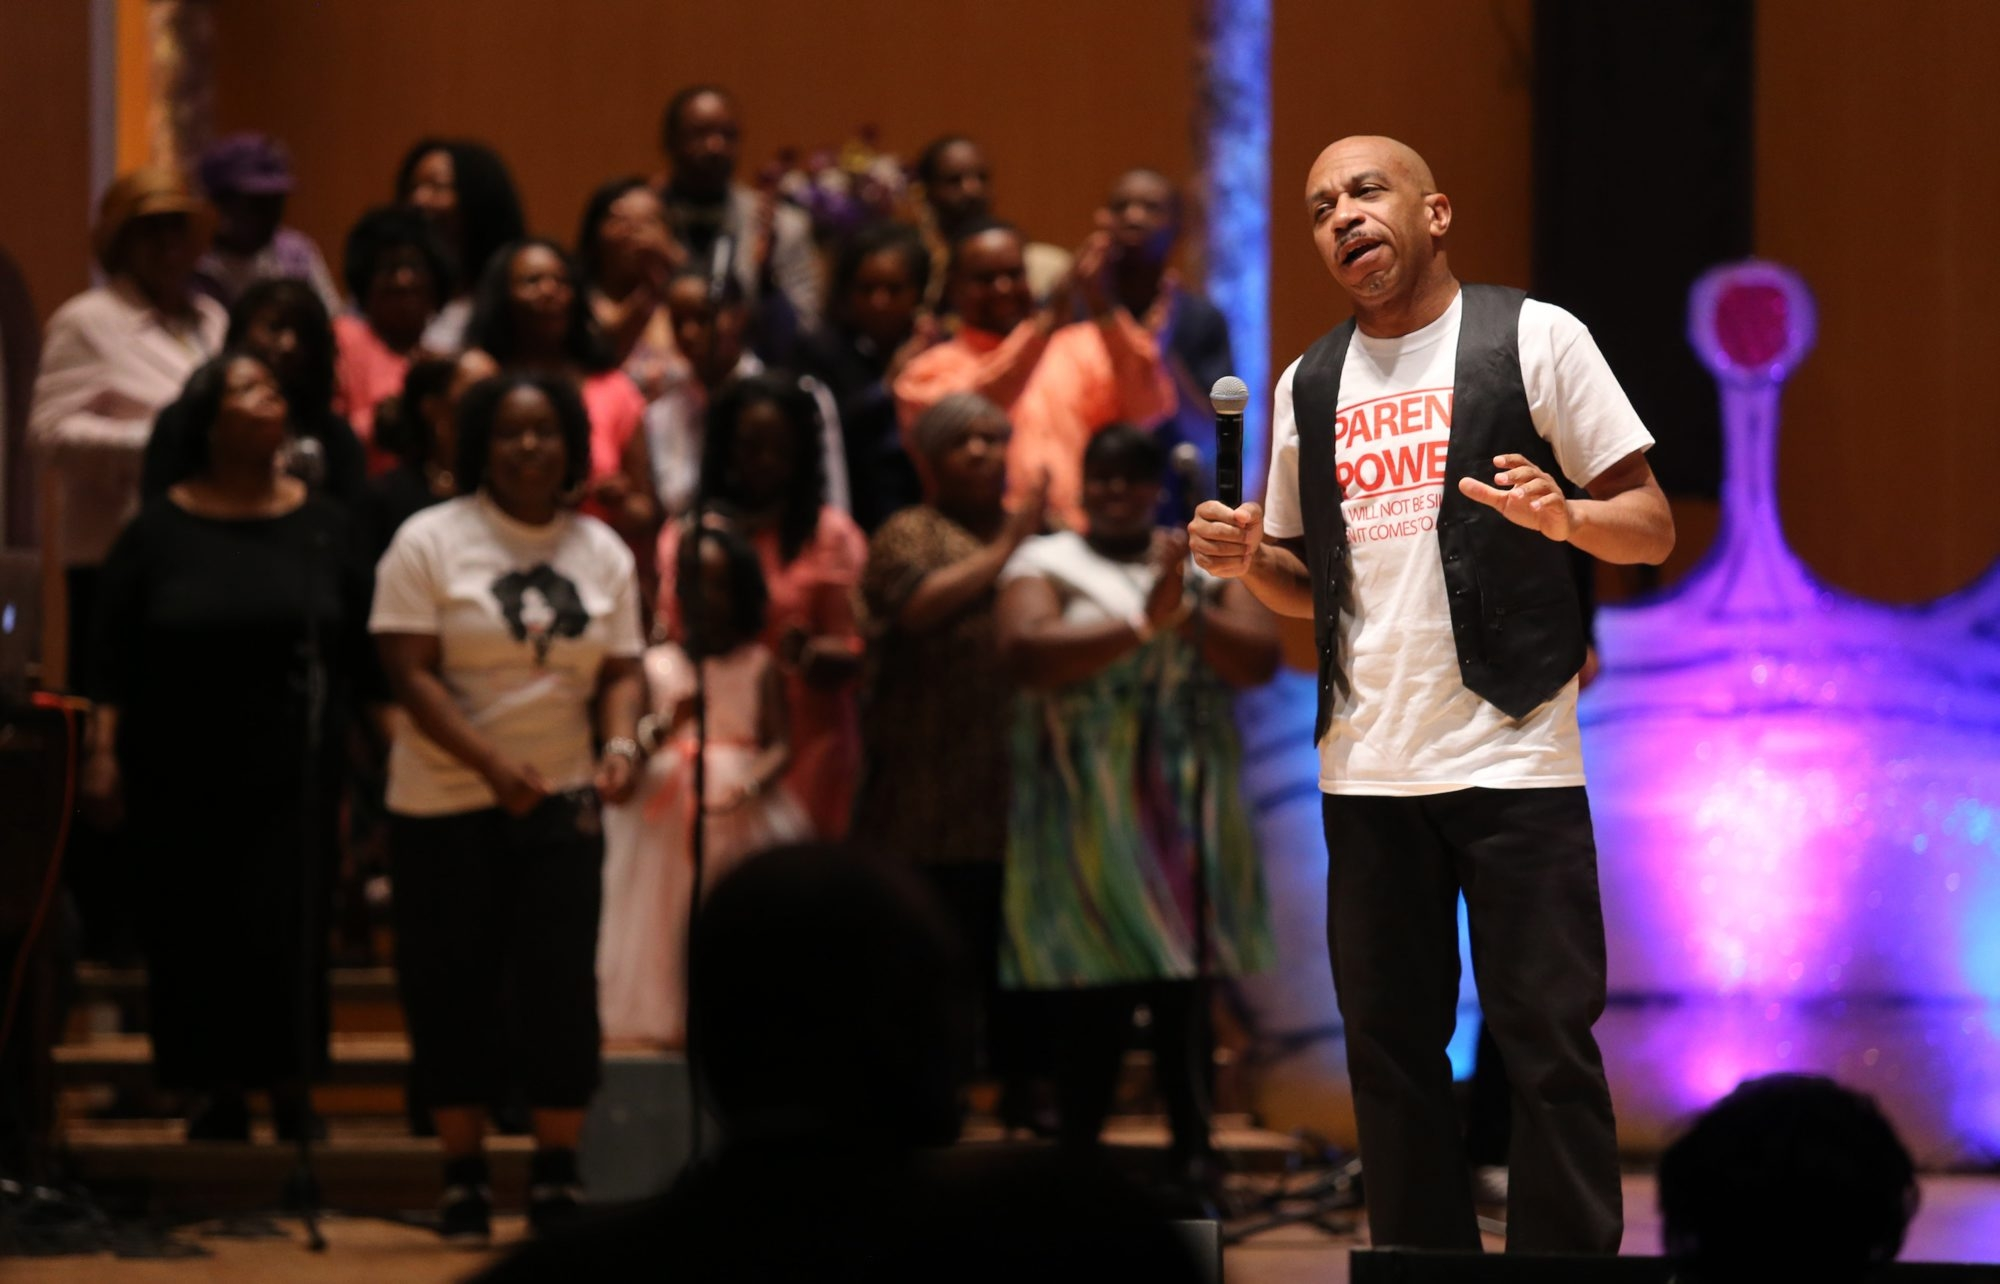 The Rev. Darius Pridgen addresses the crowd from the stage at Kleinhans Music Hall during a special True Bethel Baptist Church Easter Celebration on Sunday.